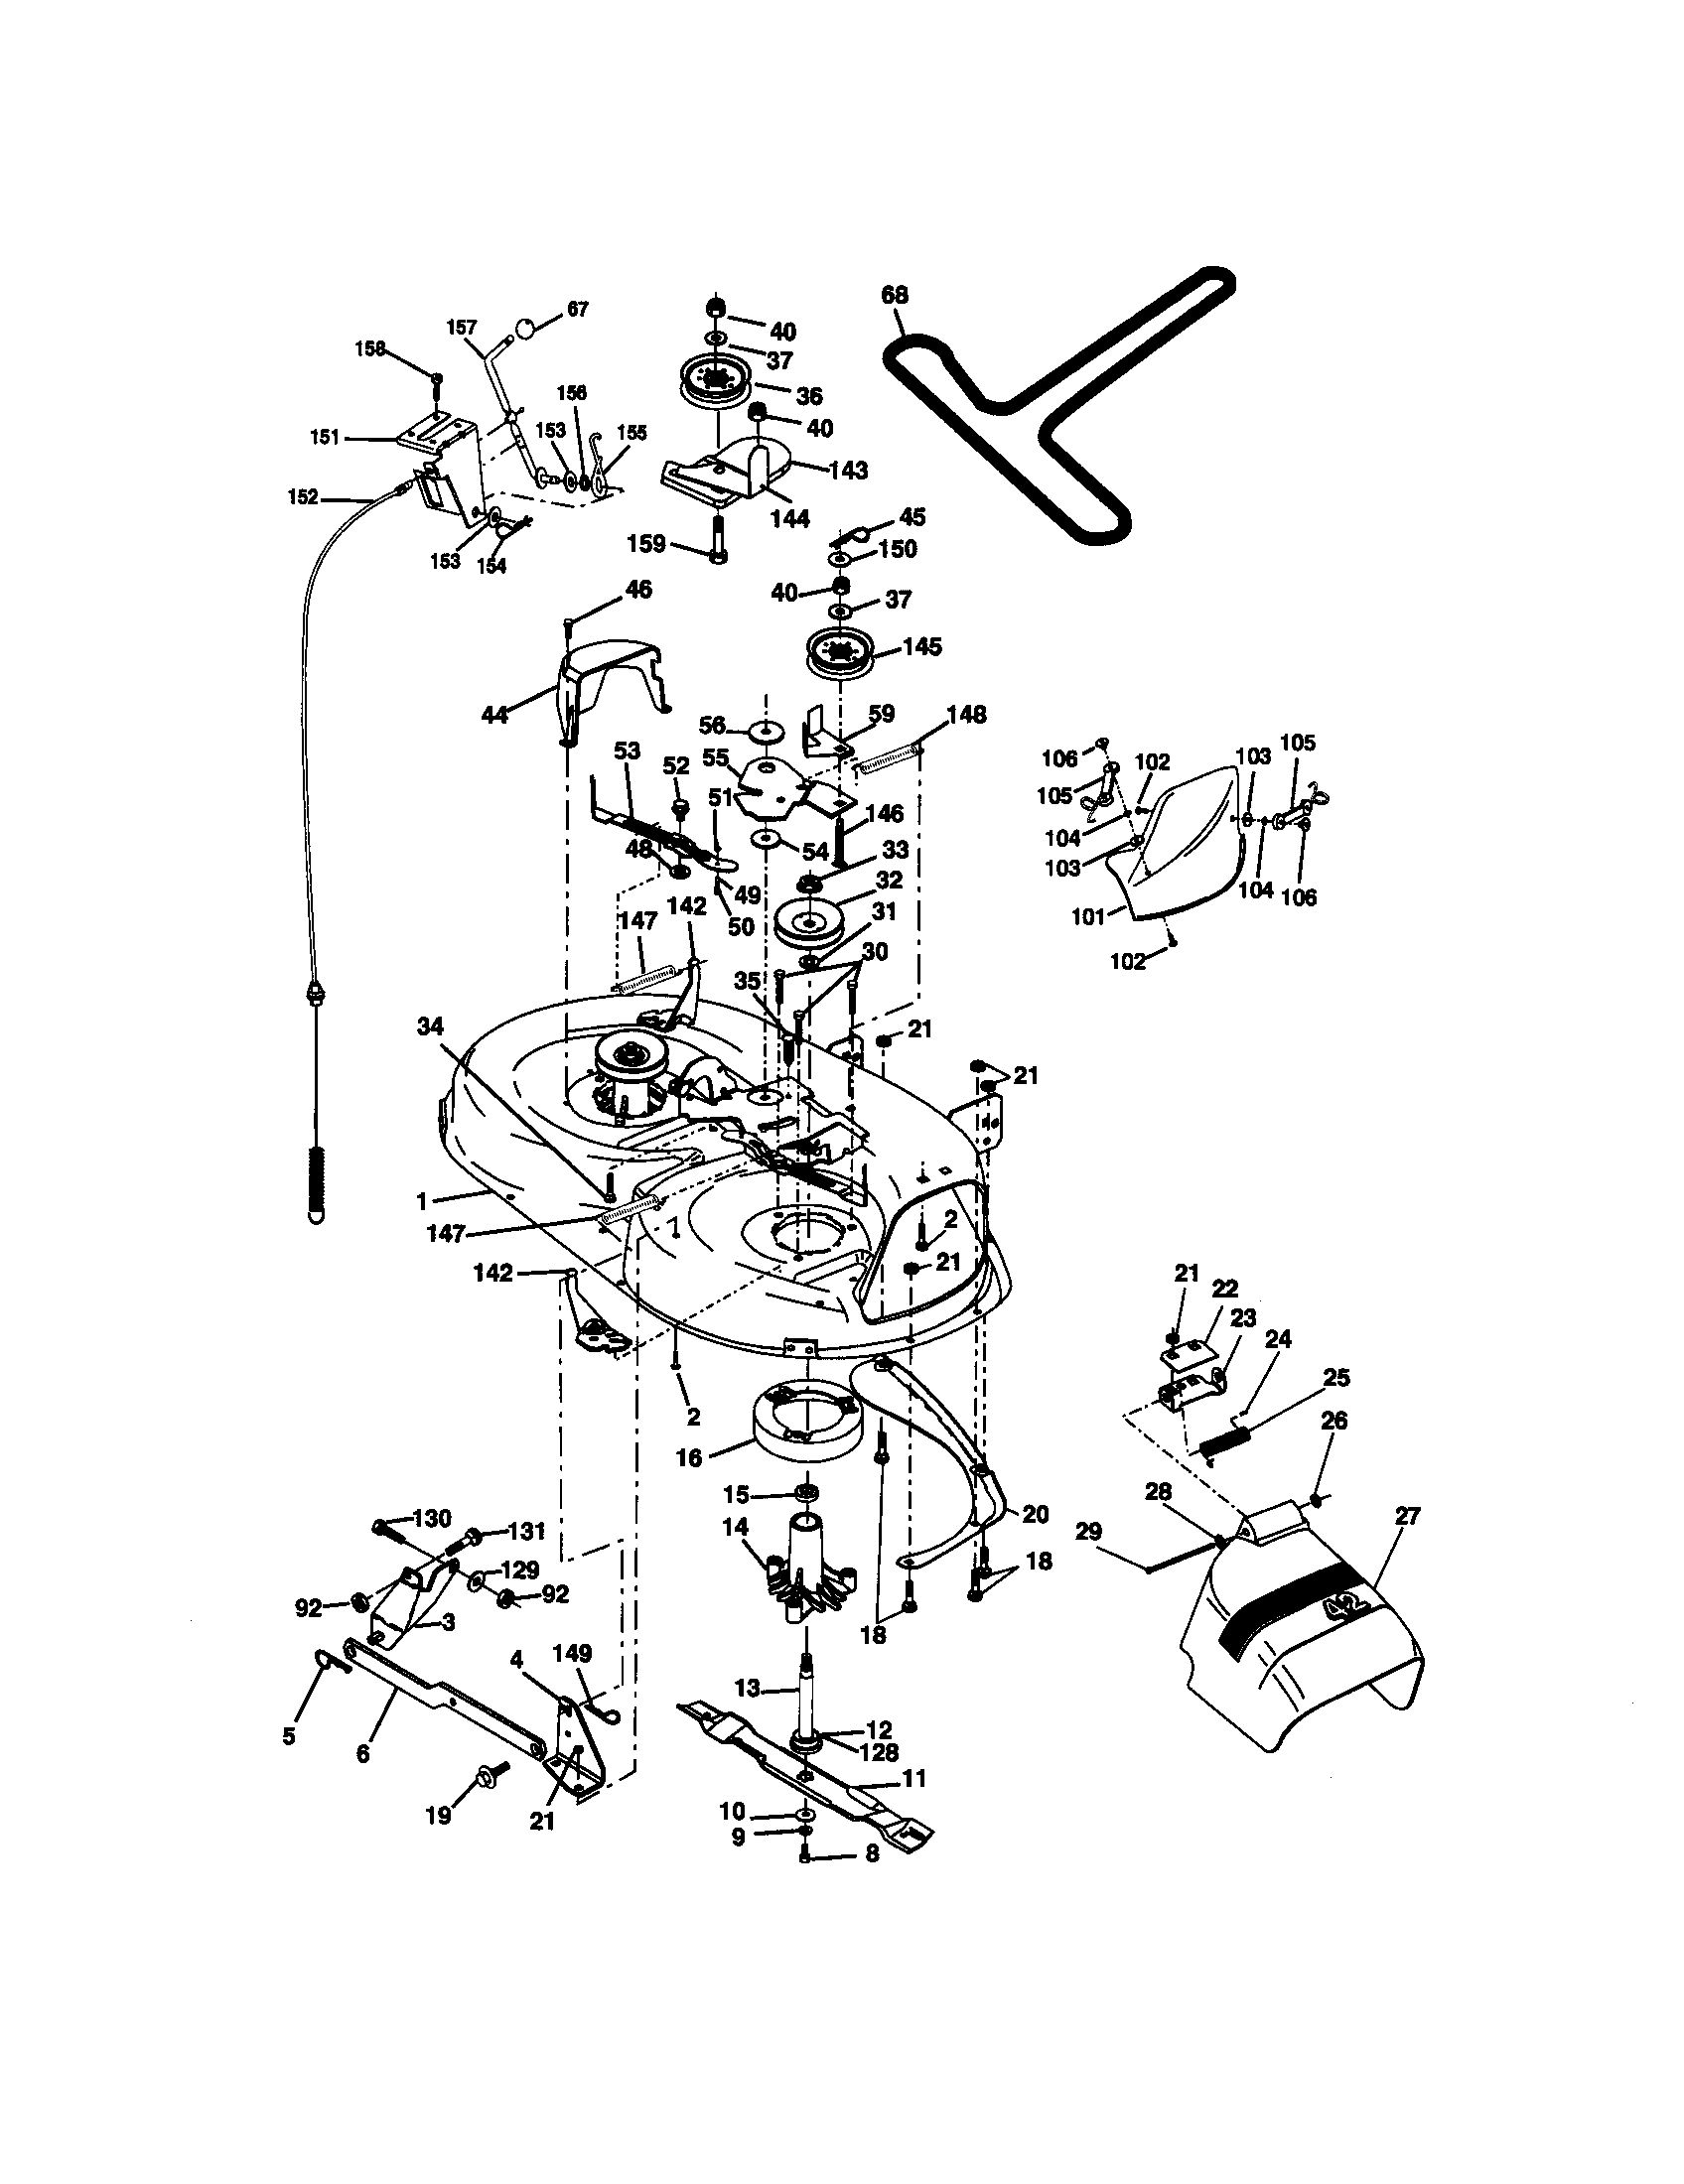 MOWER DECK Diagram & Parts List for Model 917270671